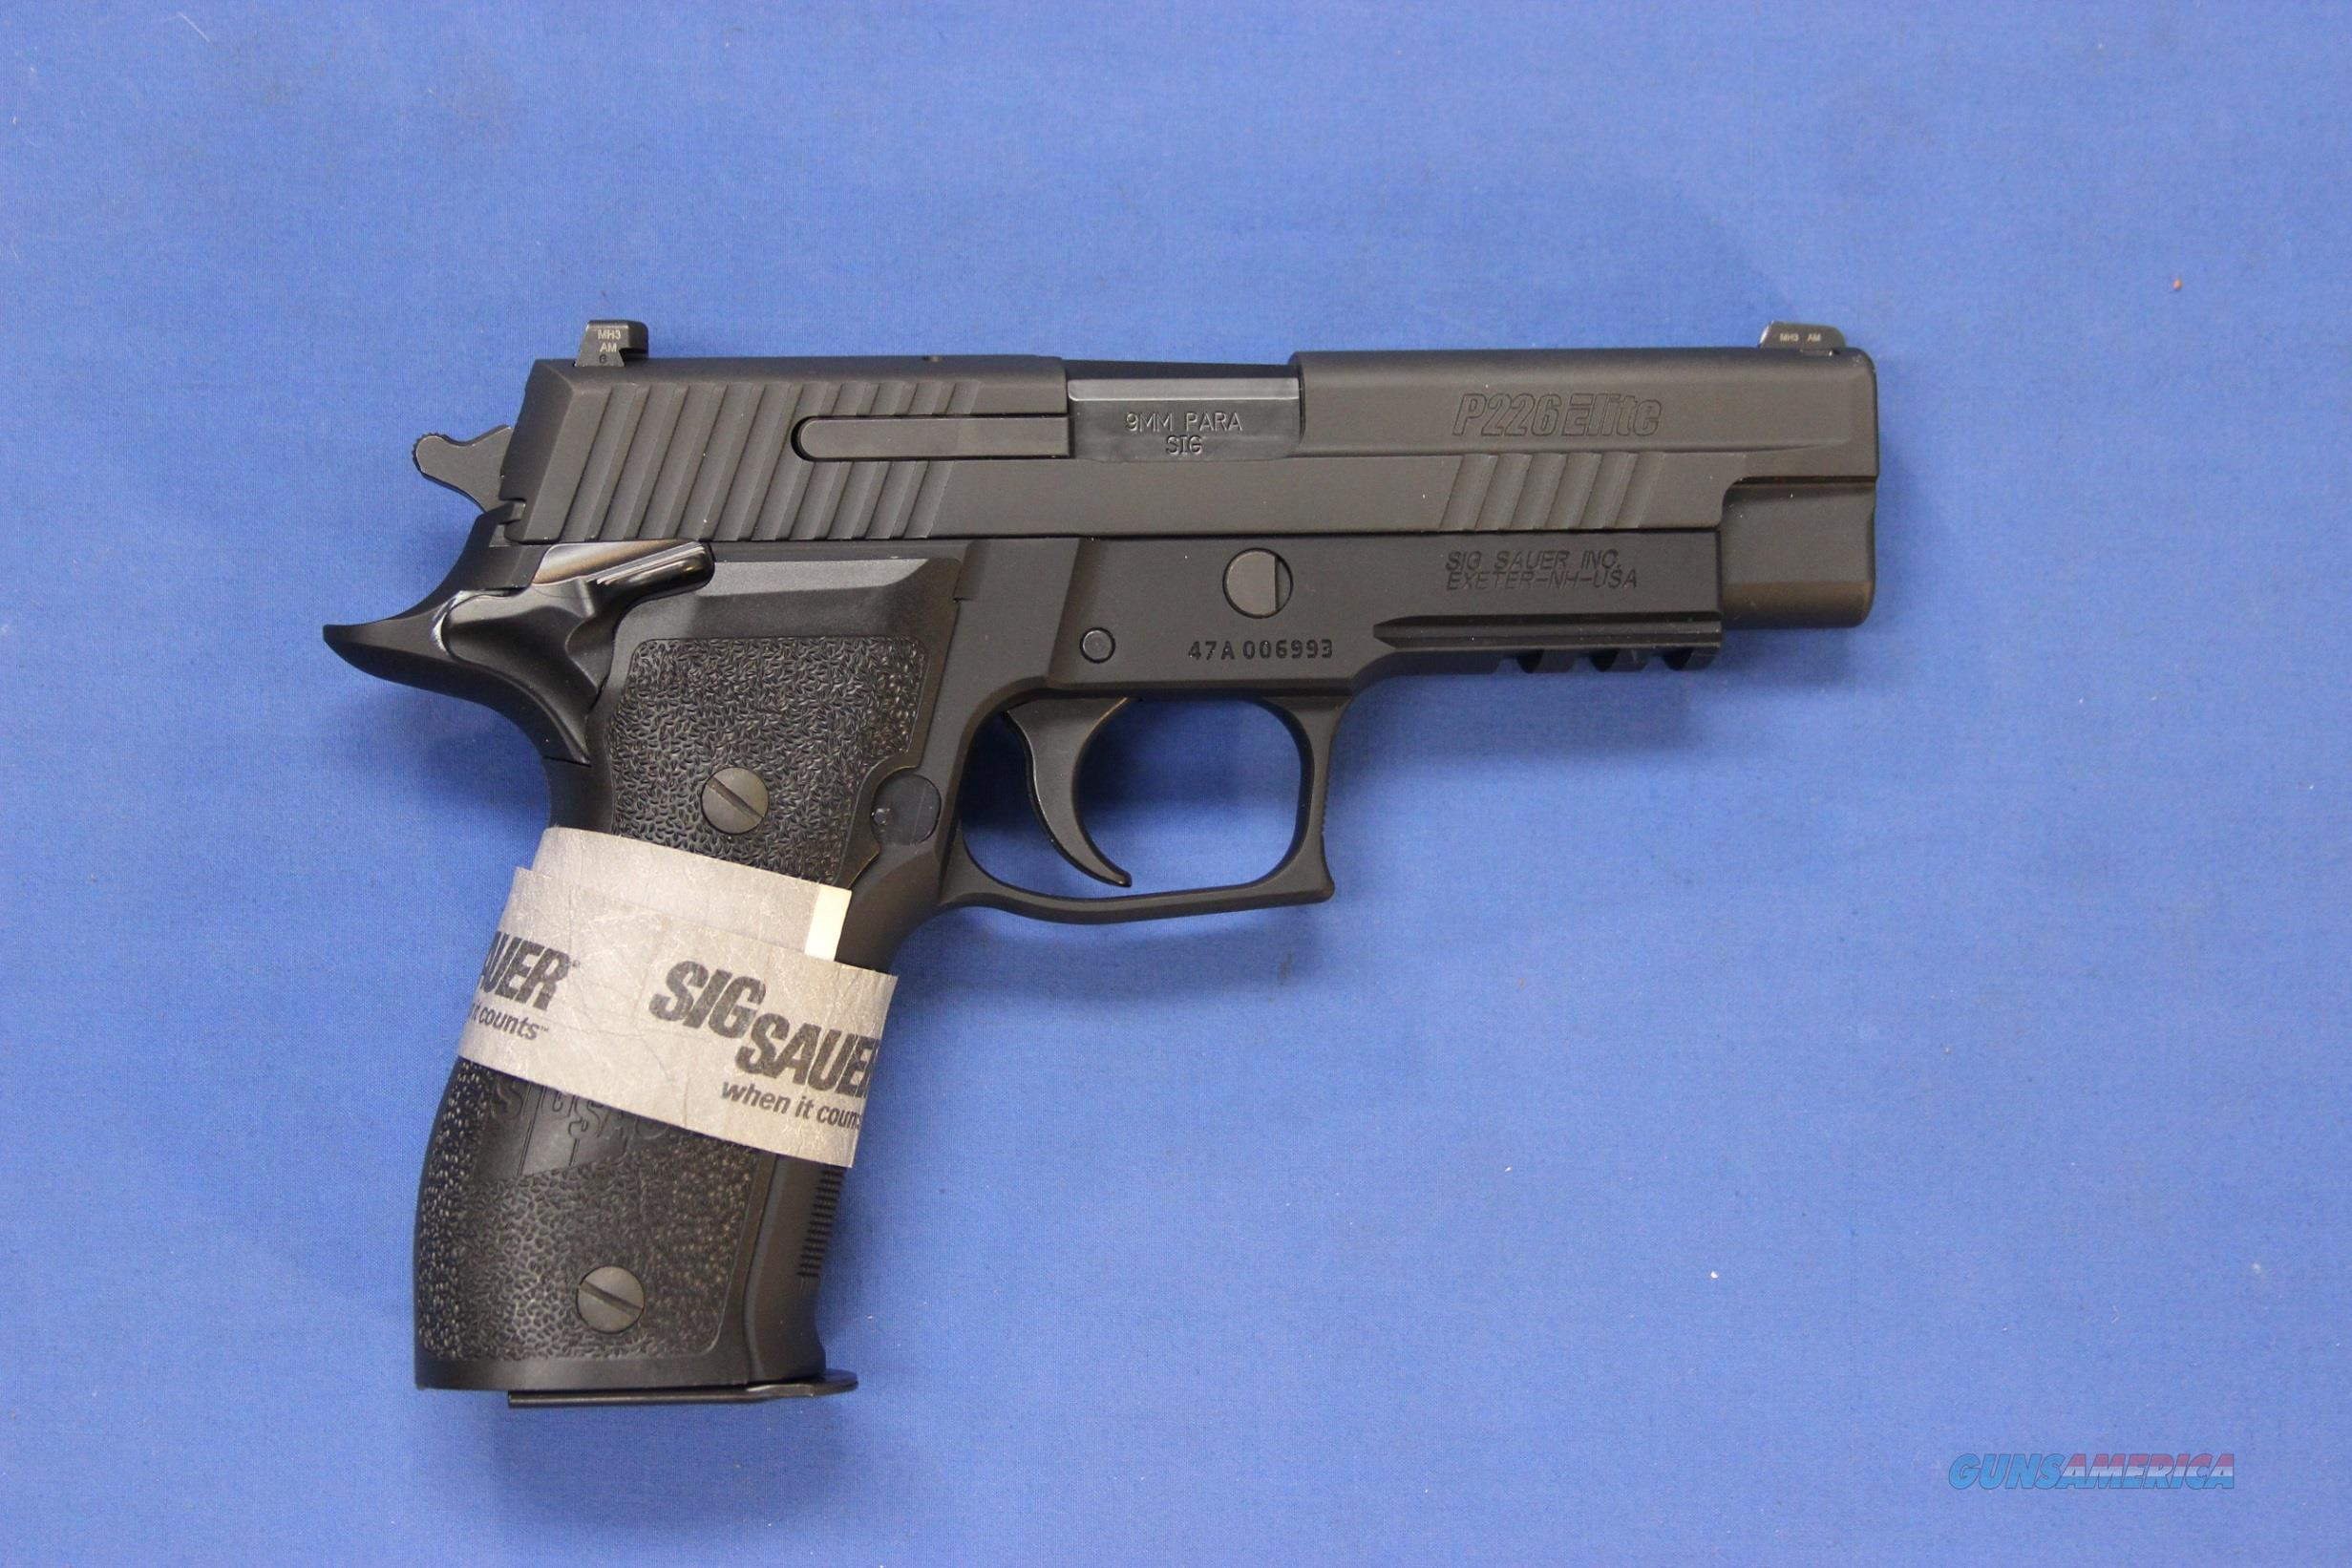 SIG SAUER P226 ELITE SINGLE ACTION SAO 9mm - NEW!  Guns > Pistols > Sig - Sauer/Sigarms Pistols > P226